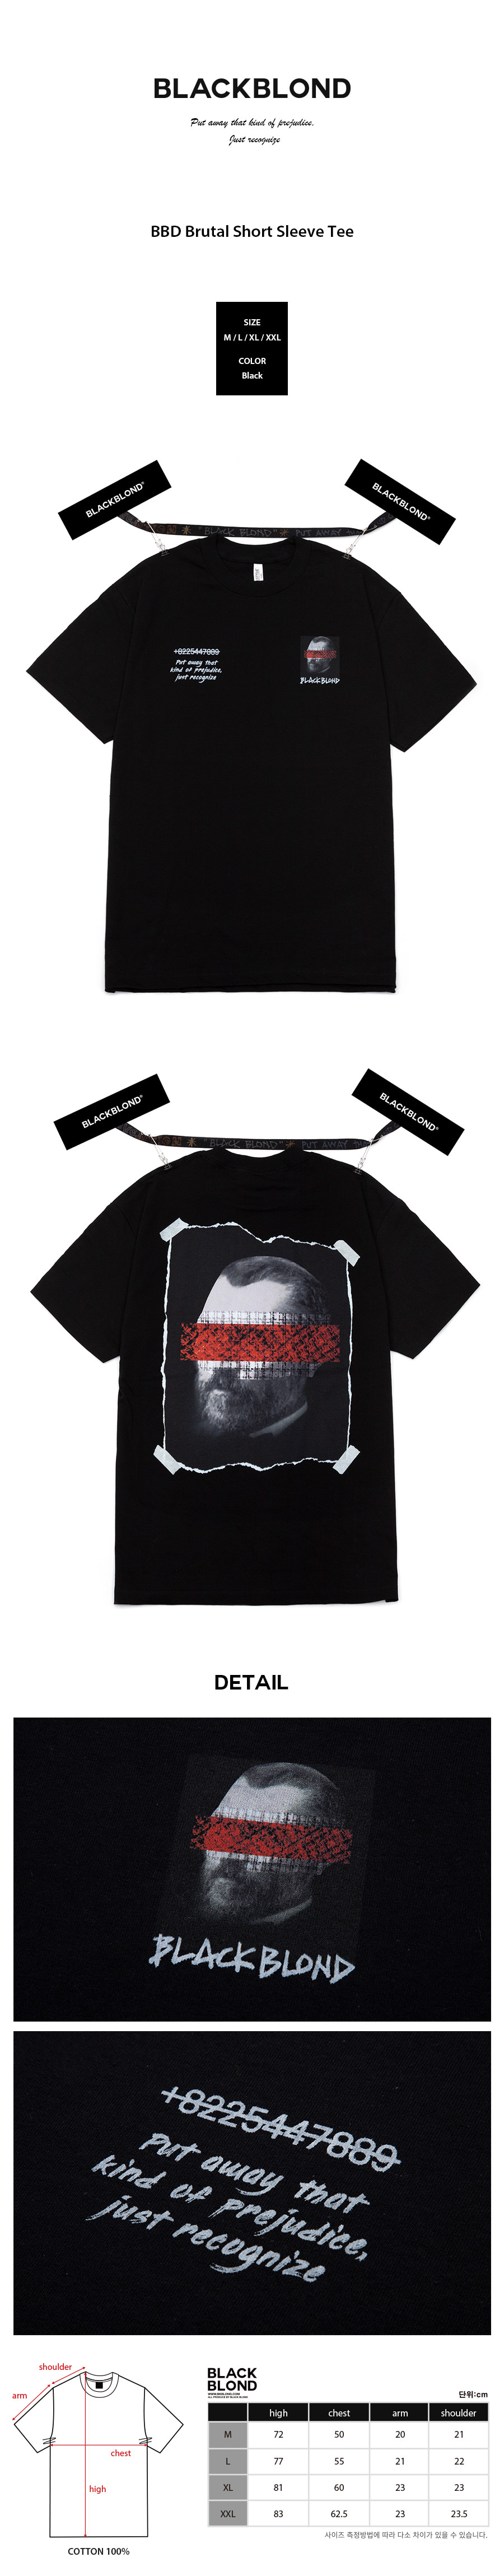 BLACKBLOND - BBD Brutal Short Sleeve Tee (Black)